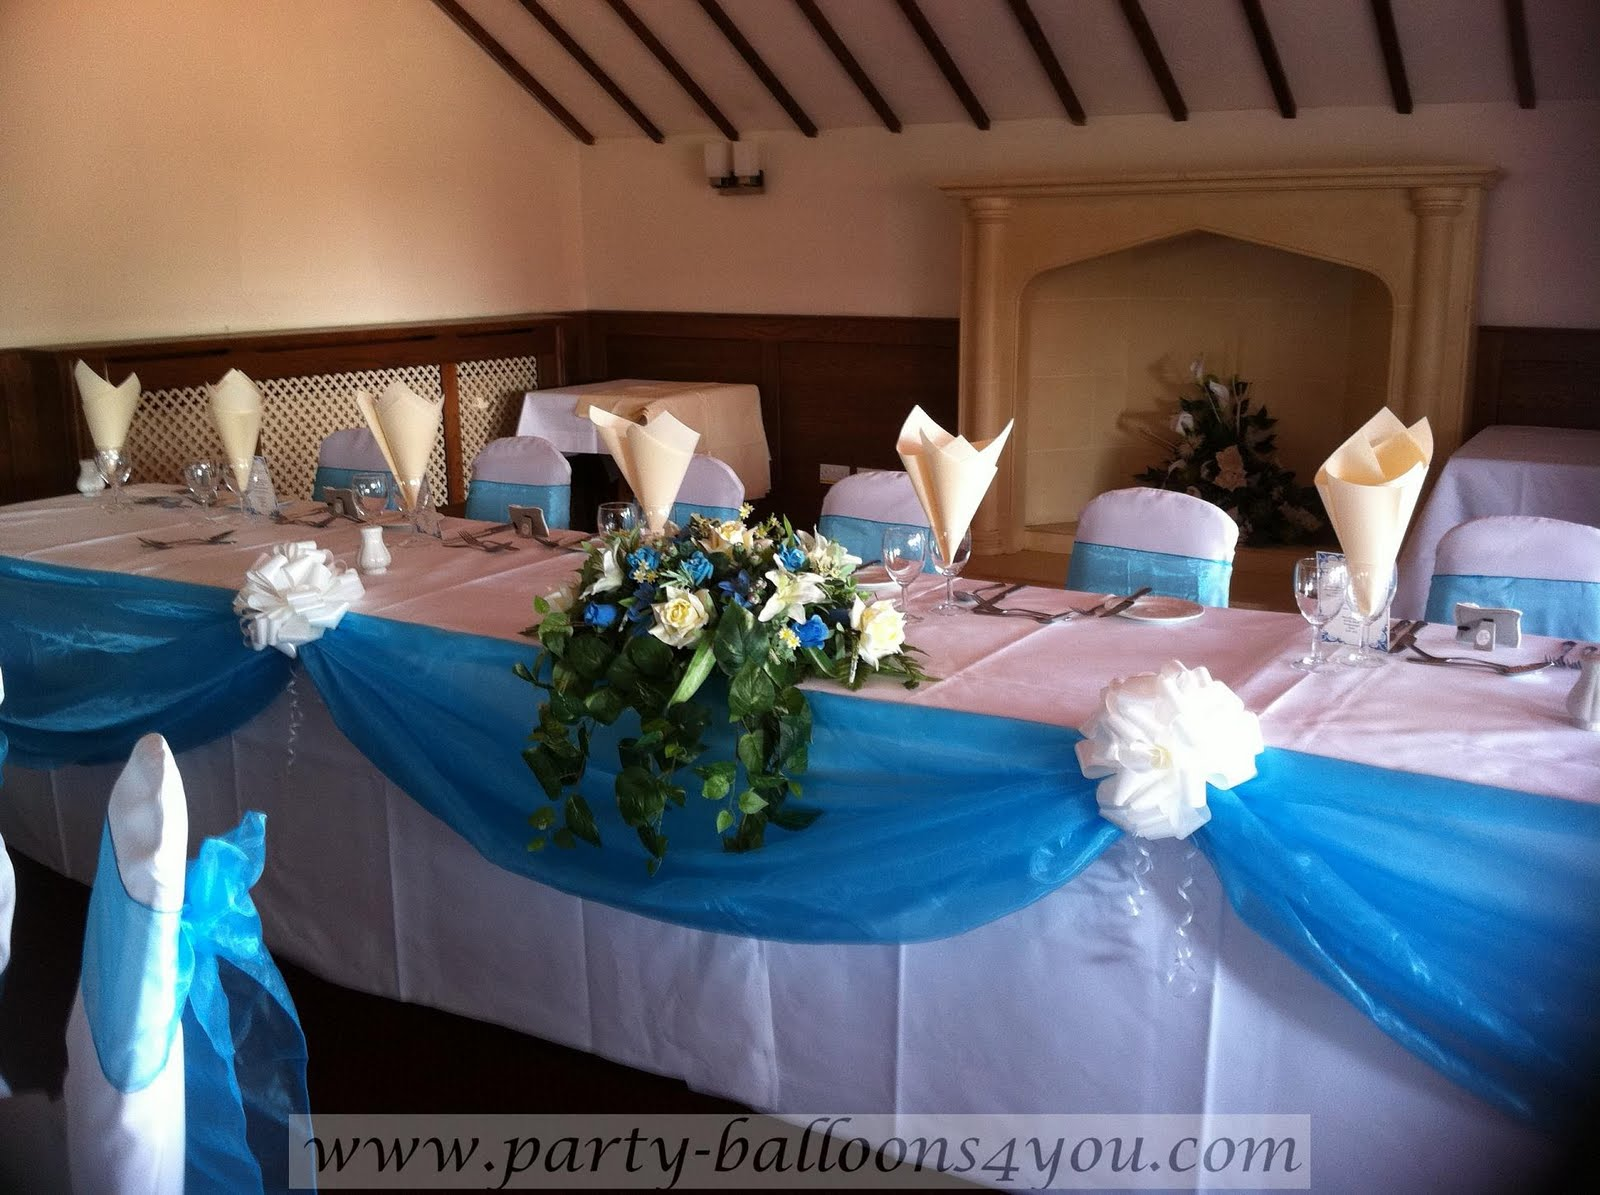 Party Balloons 4 You: Rachel And Shaun Wedding On The 2nd